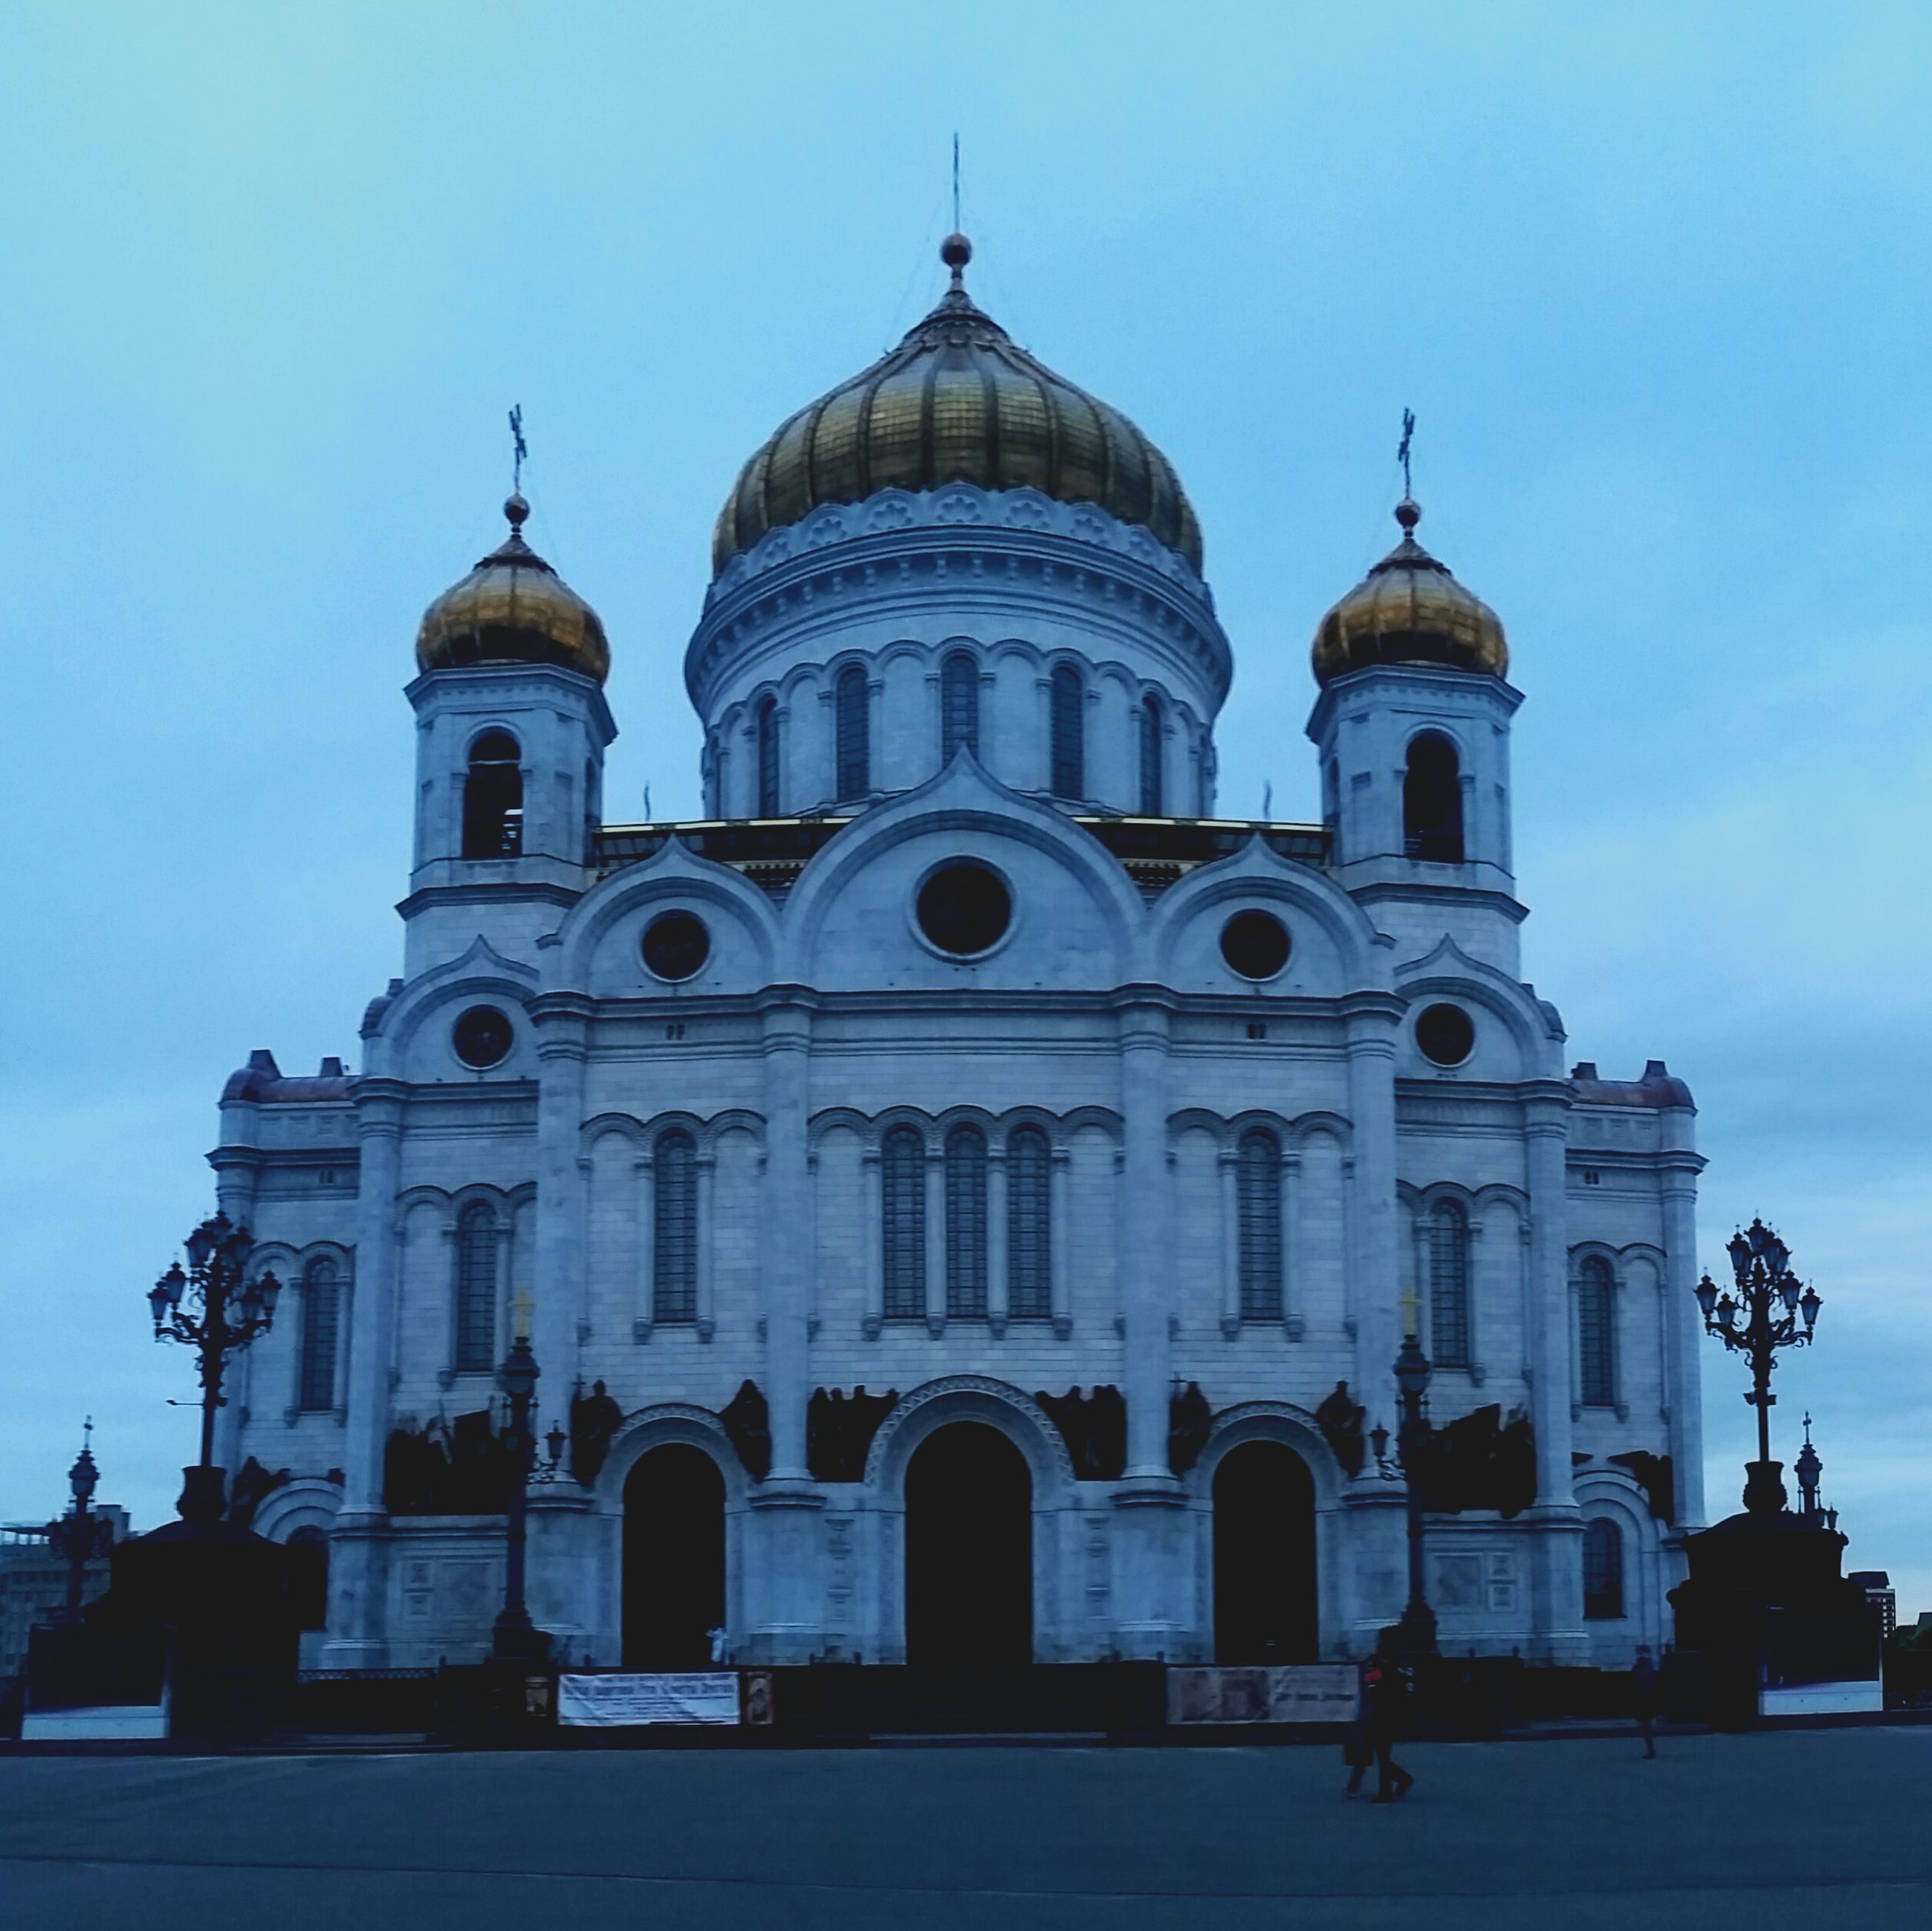 architecture, religion, dome, building exterior, place of worship, spirituality, built structure, history, outdoors, facade, incidental people, sky, travel destinations, day, low angle view, city, people